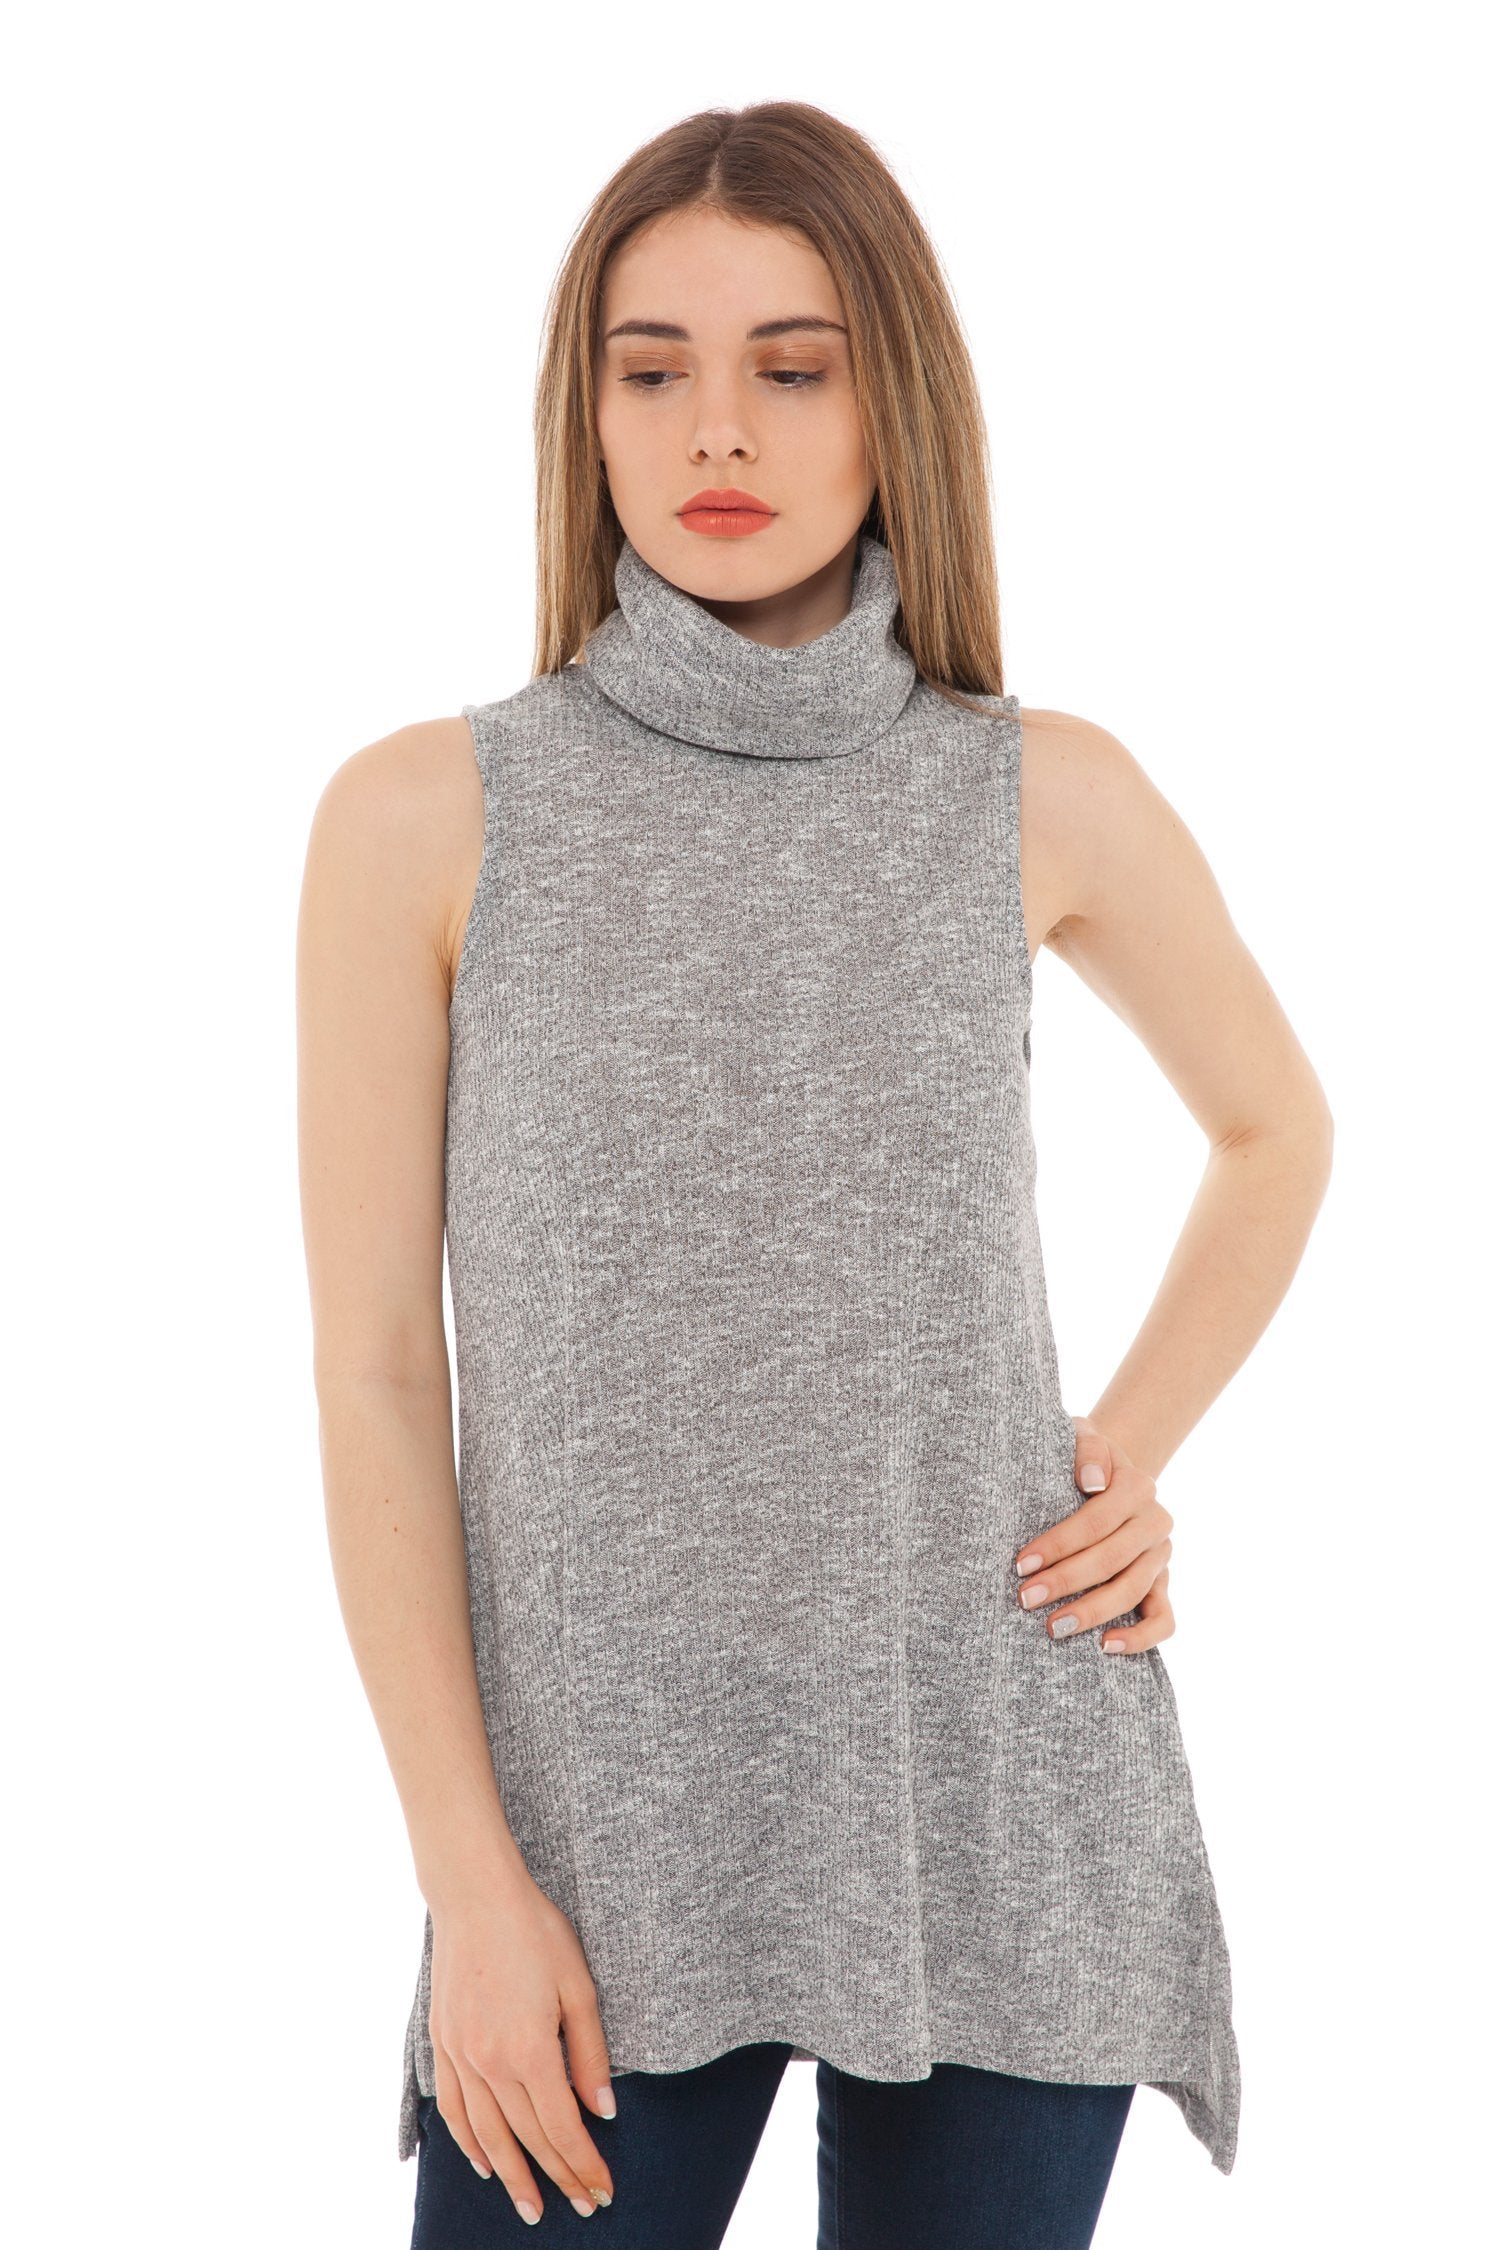 chassca mouline turtleneck  tunic